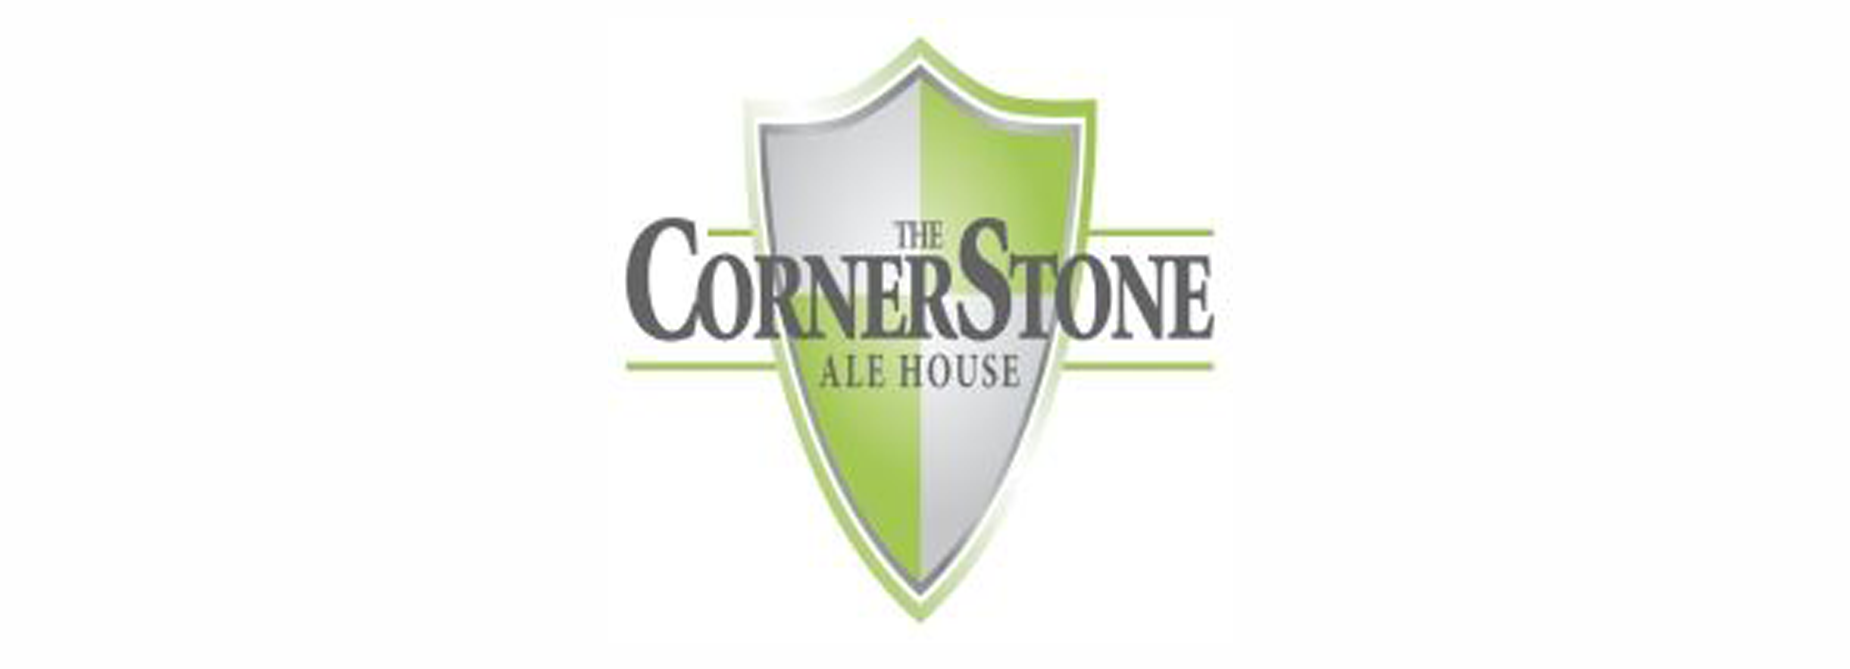 The Cornerstone Alehouse logo